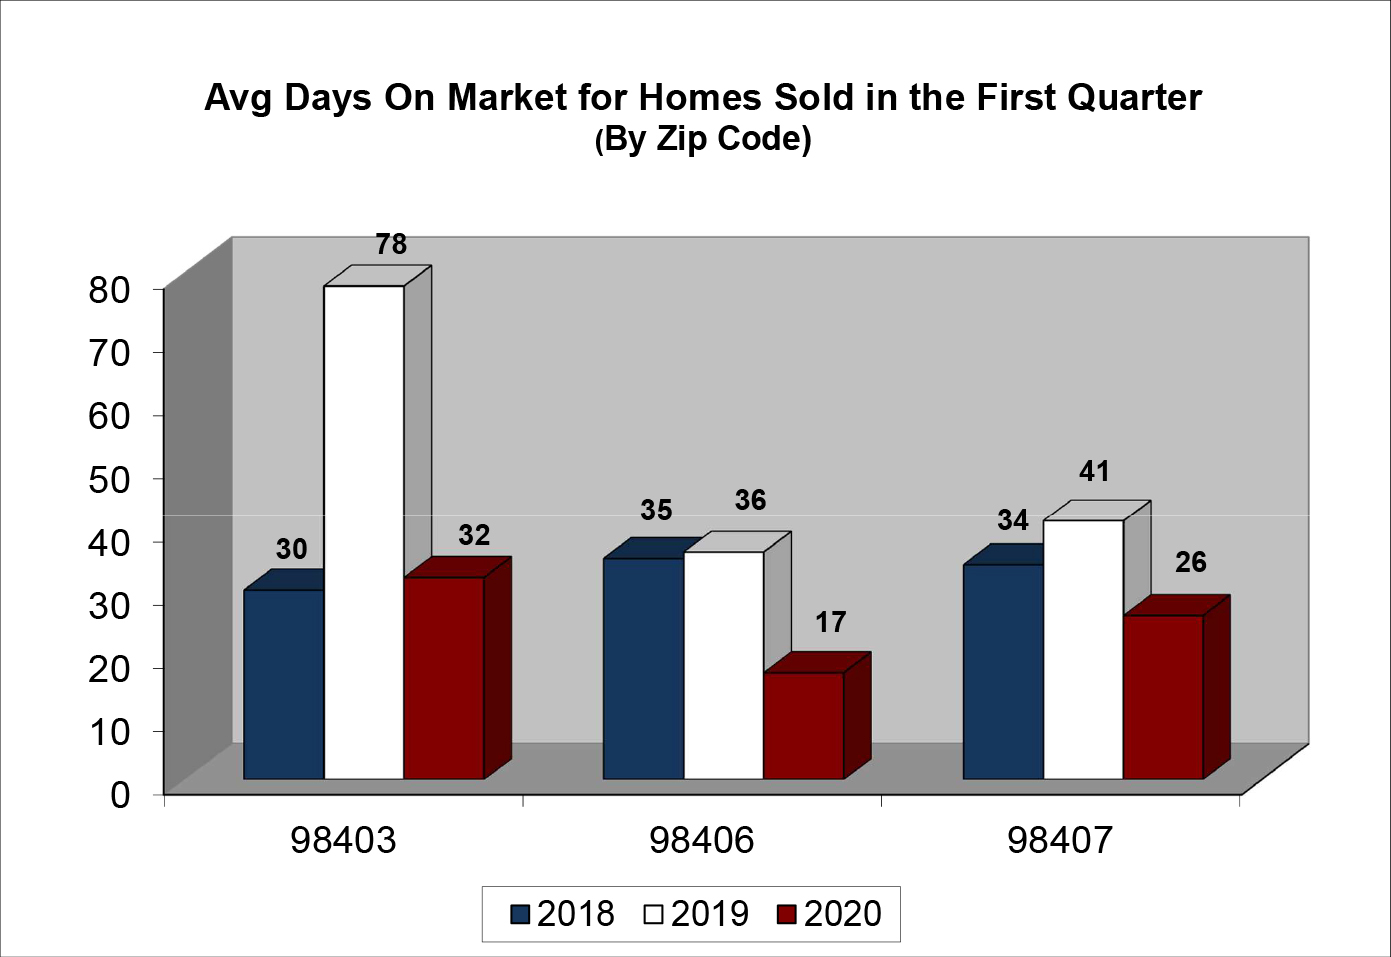 Q1 2020 North End Days On Market Chart